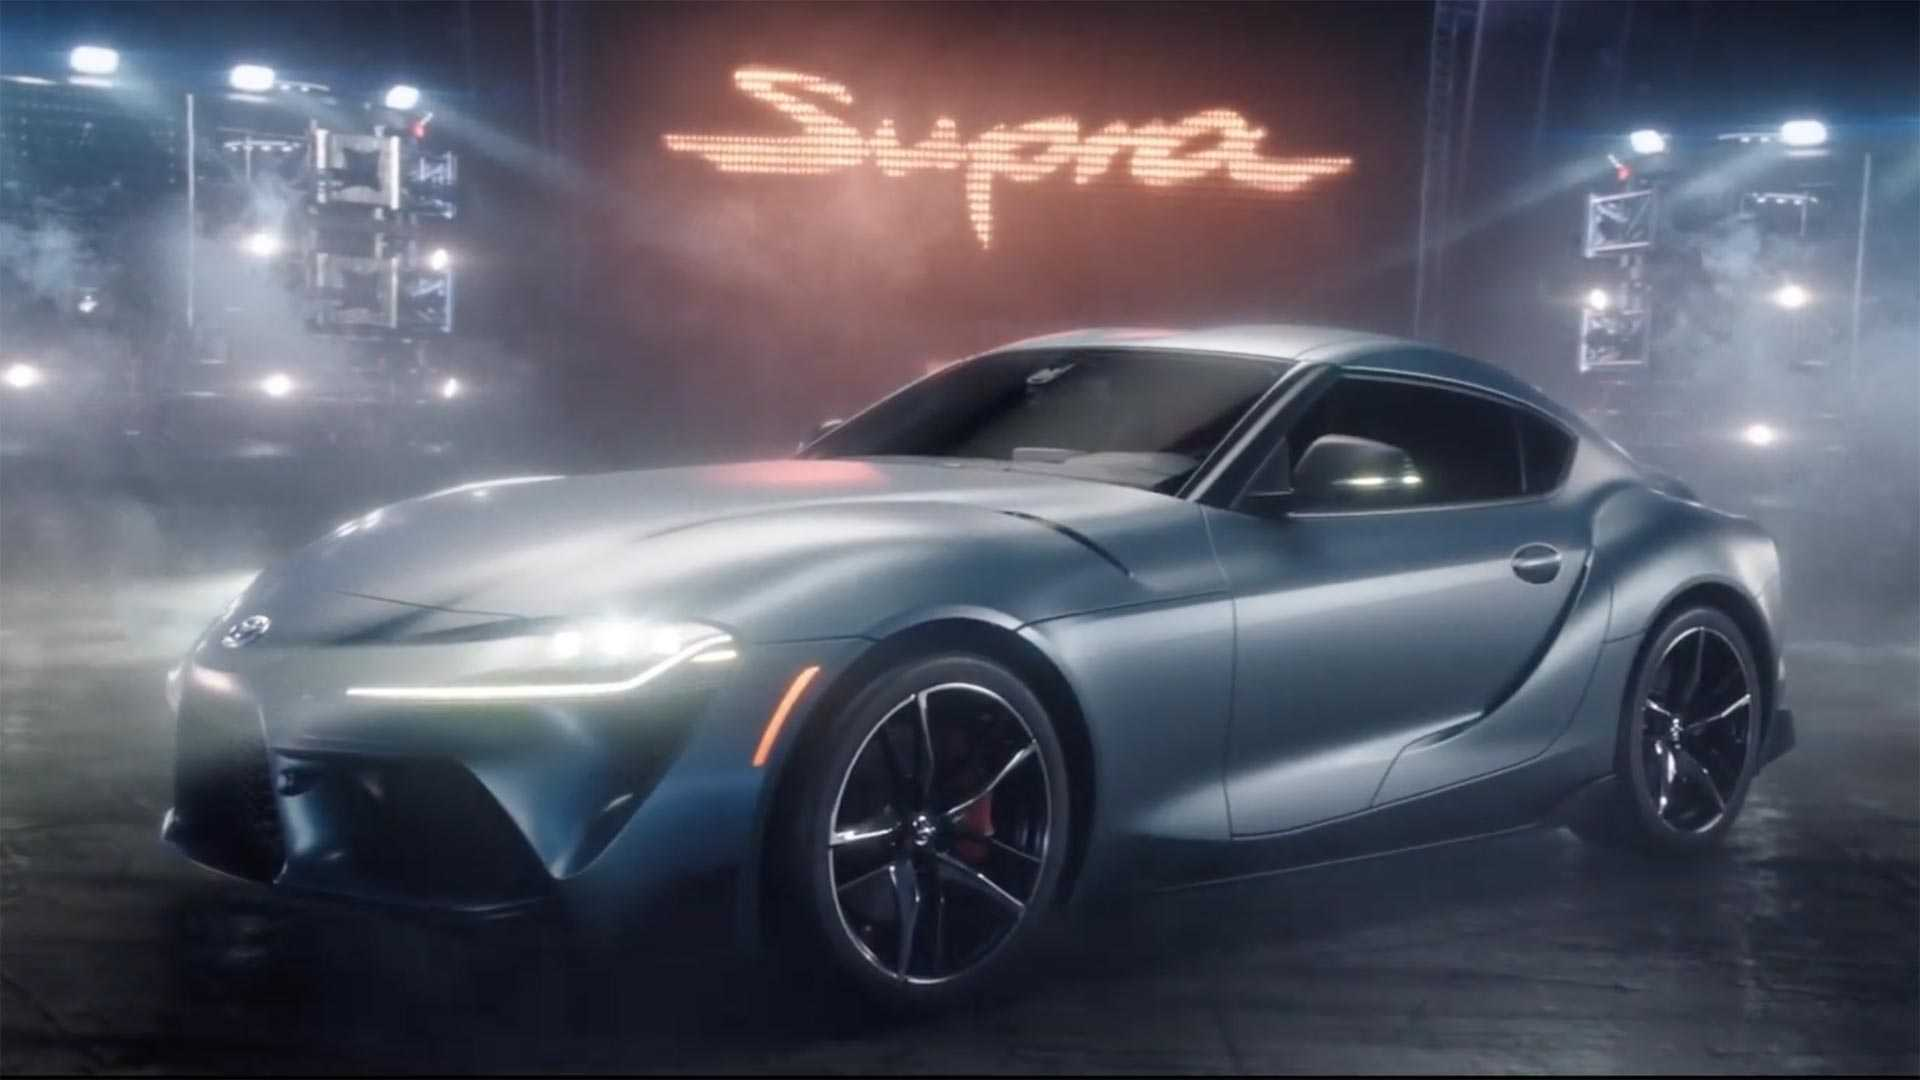 Best Super Bowl Commercials 2020 Watch 2020 Toyota Supra's Pinball Themed Super Bowl Ad